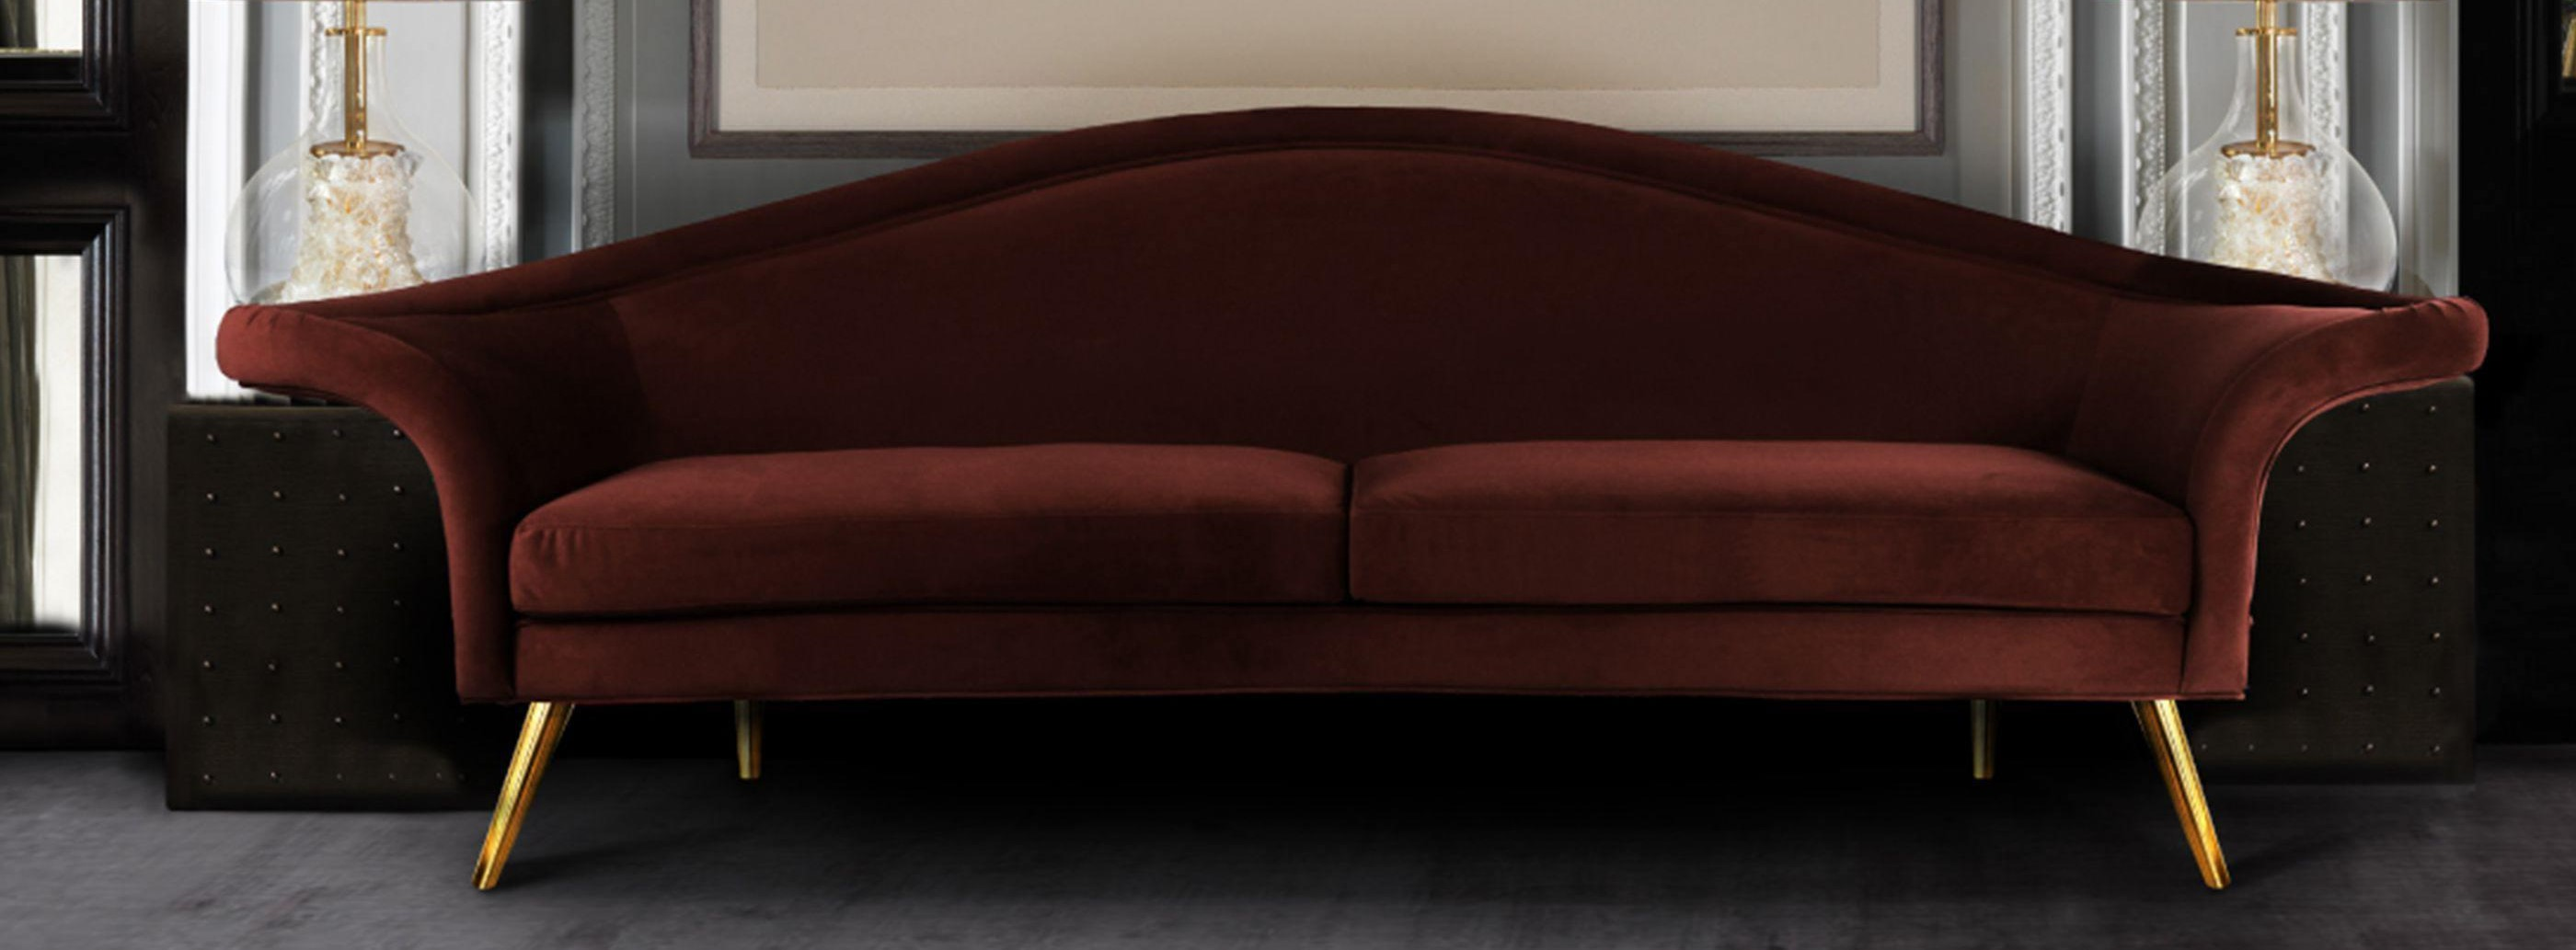 Dorothy Mid-Century Modern Sofa in cherry red cotton velvet